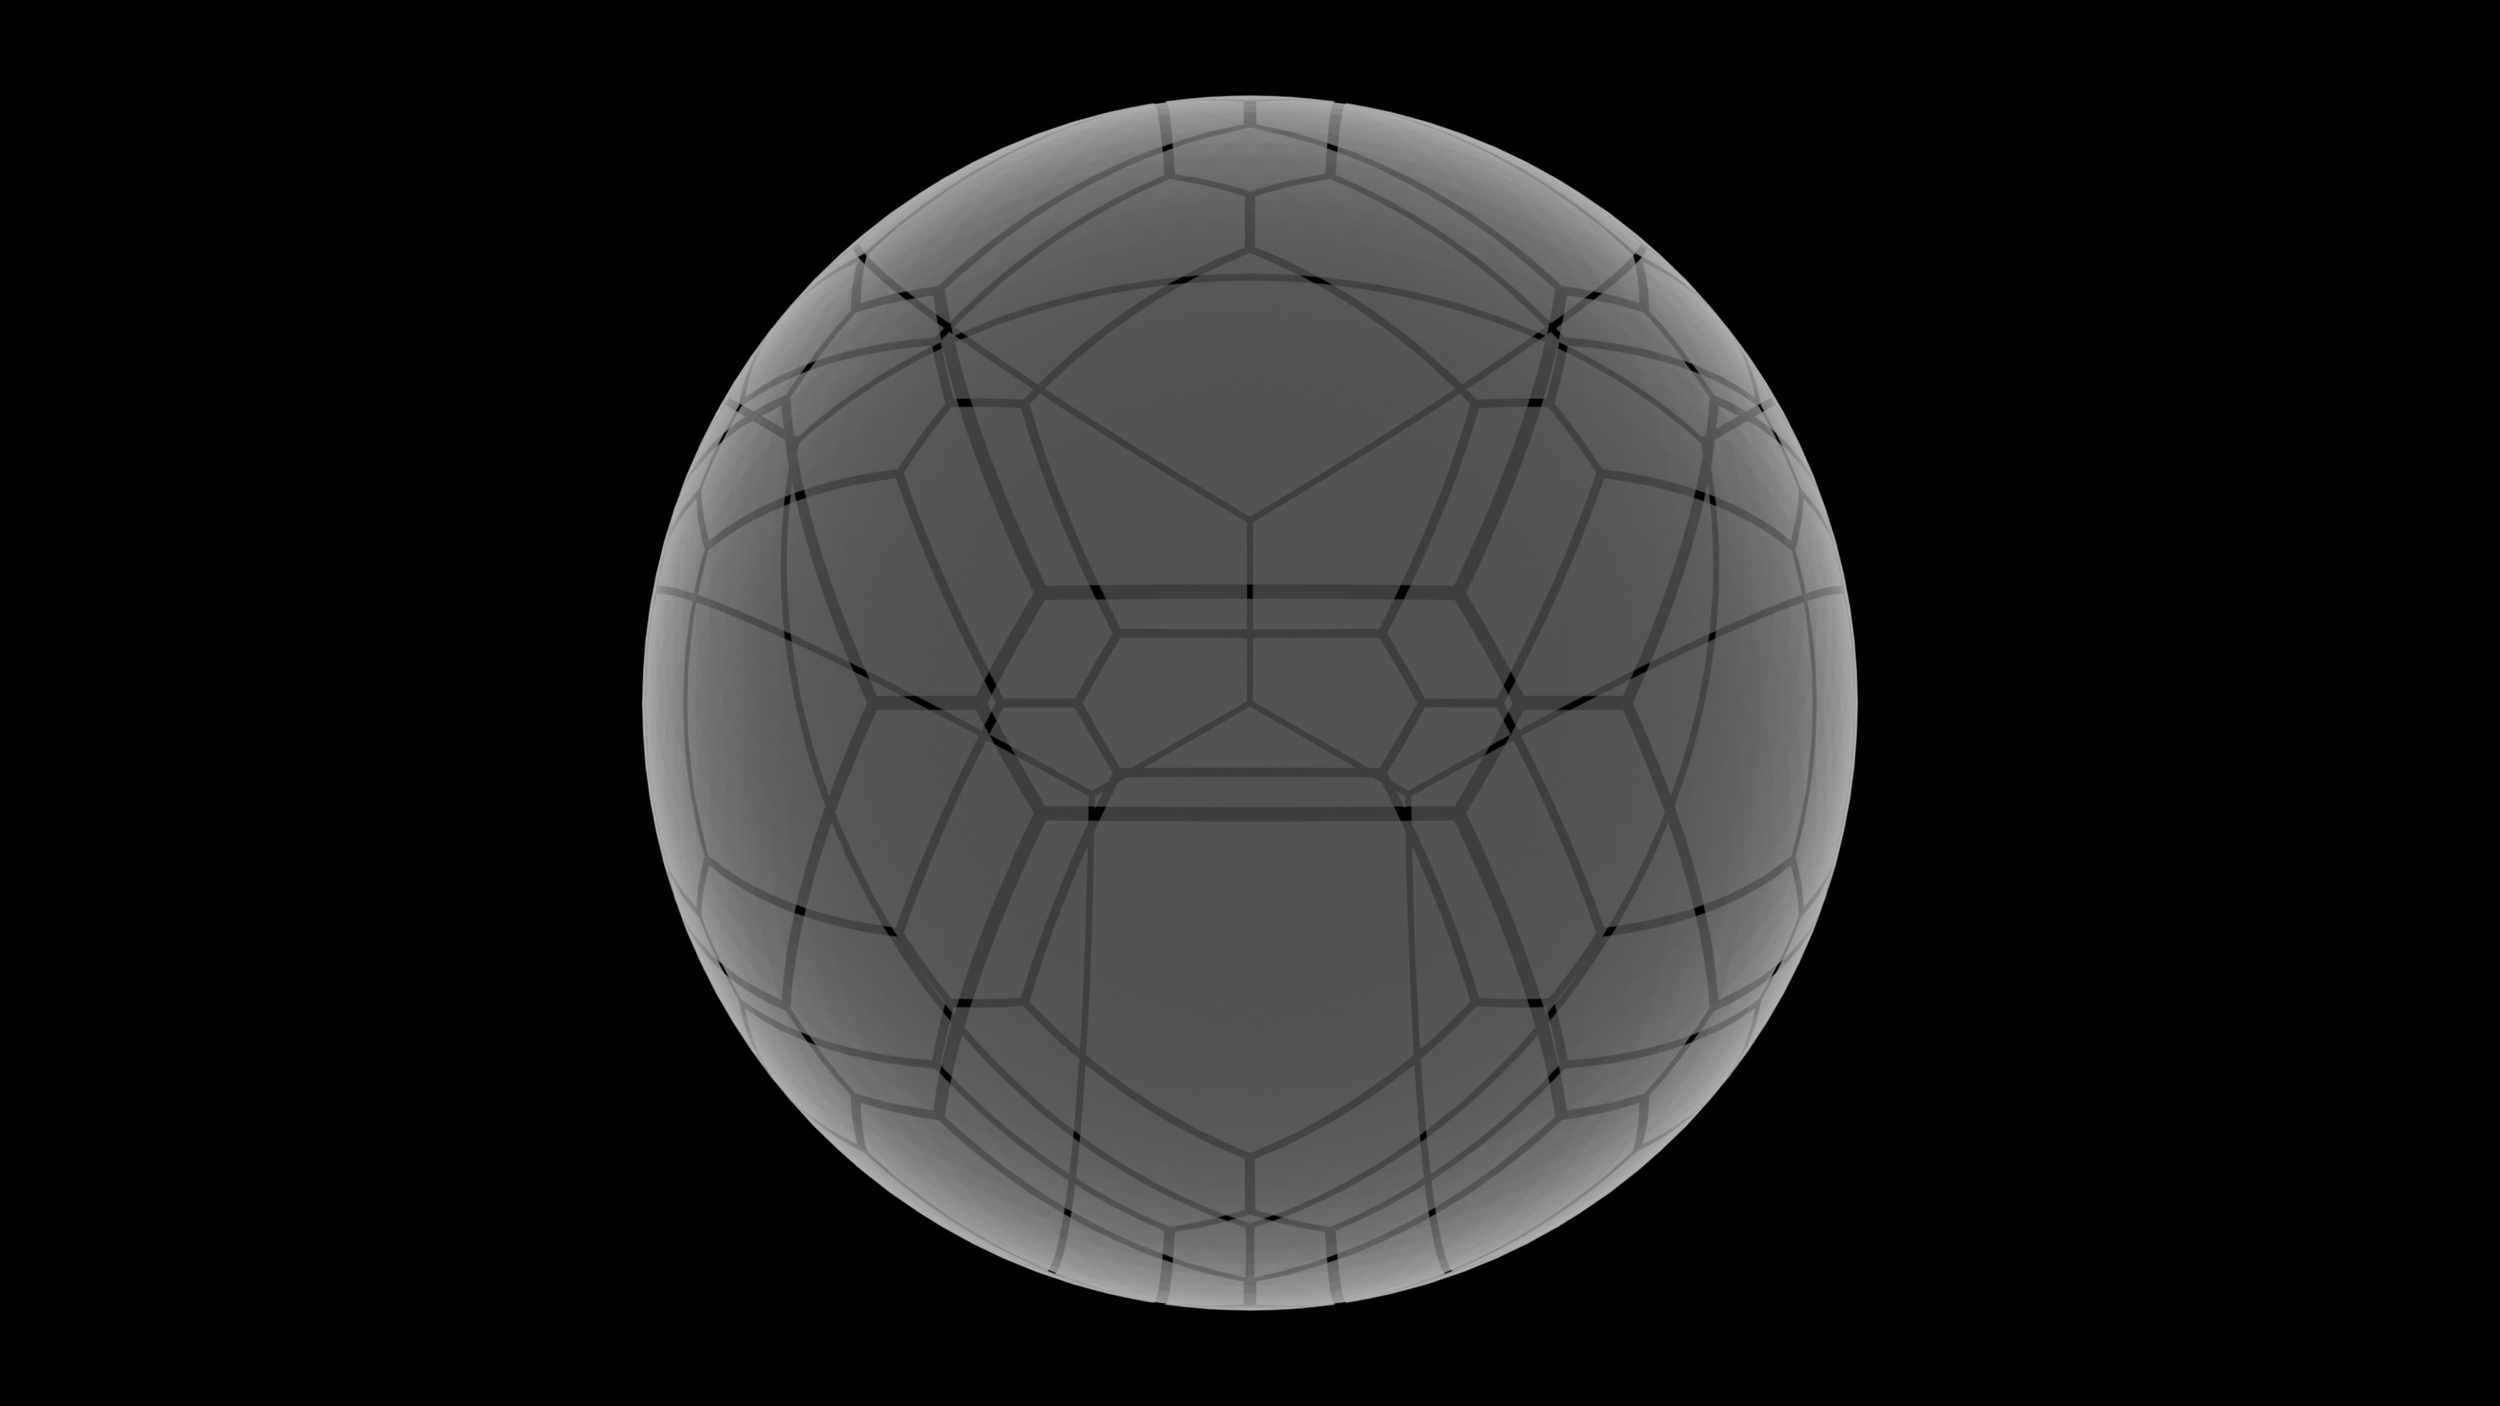 hex sphere fracture 02.png